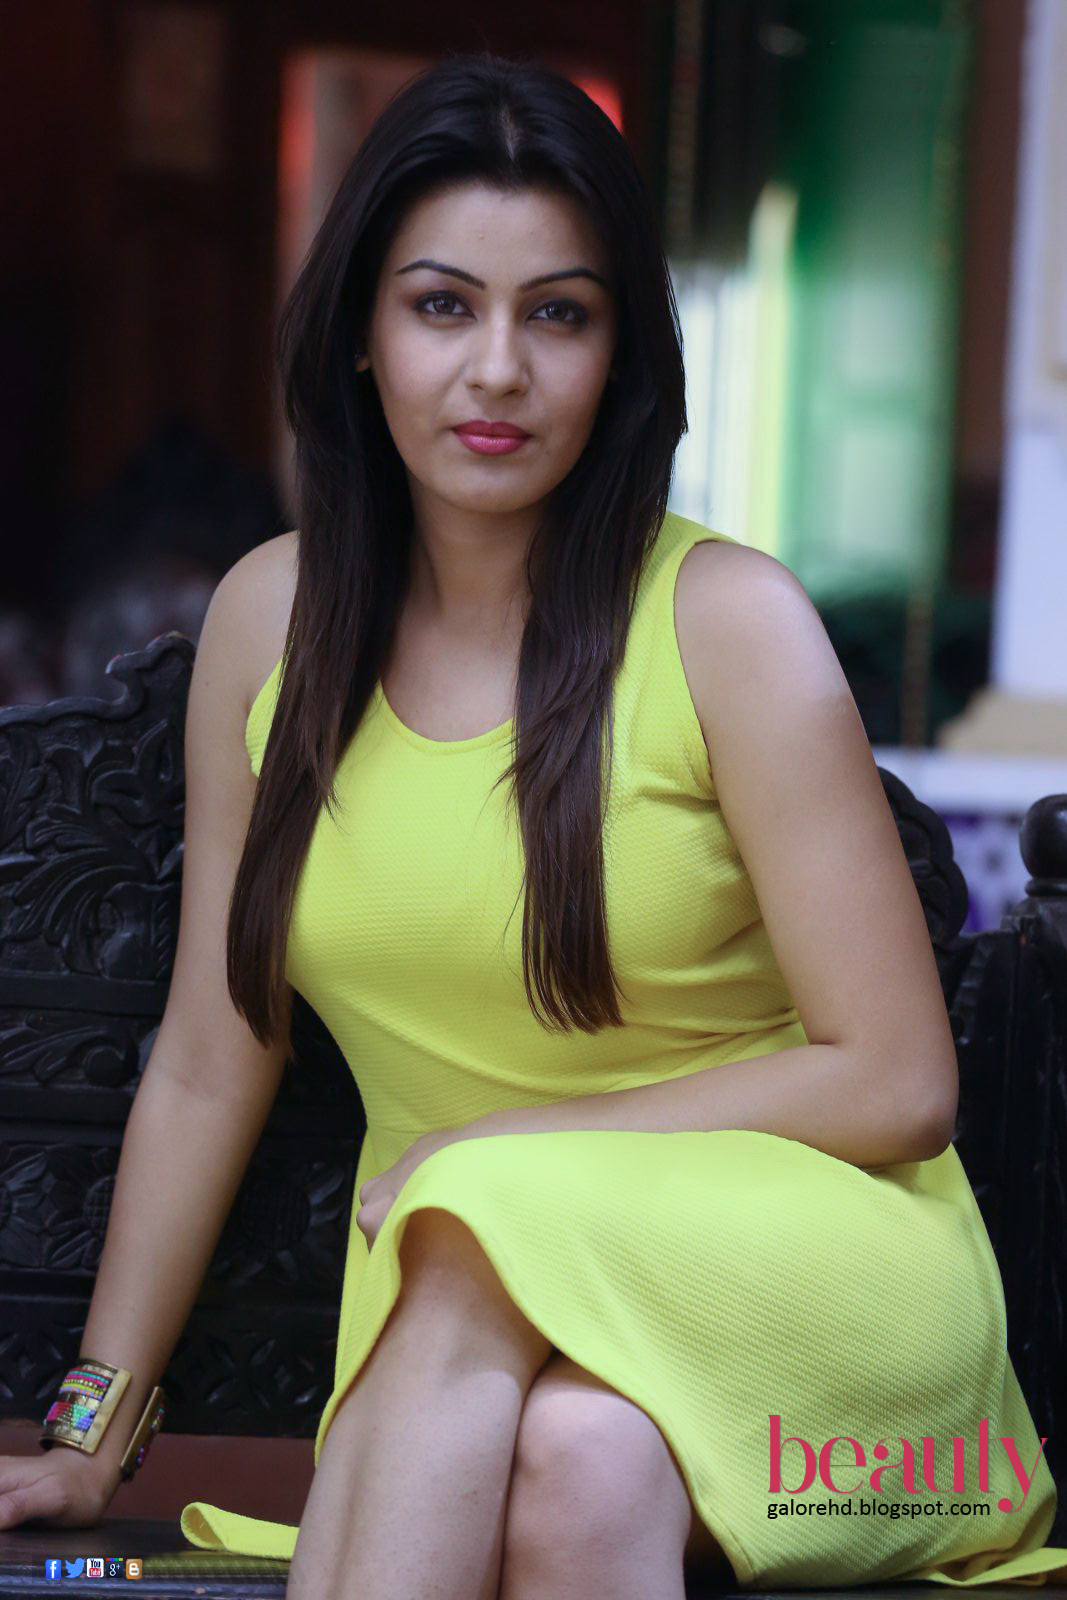 Beauty galore hd yamini malhotra looking extra hot and sensuous in marathi actress yamini malhotra is very beautiful and sexy thecheapjerseys Choice Image